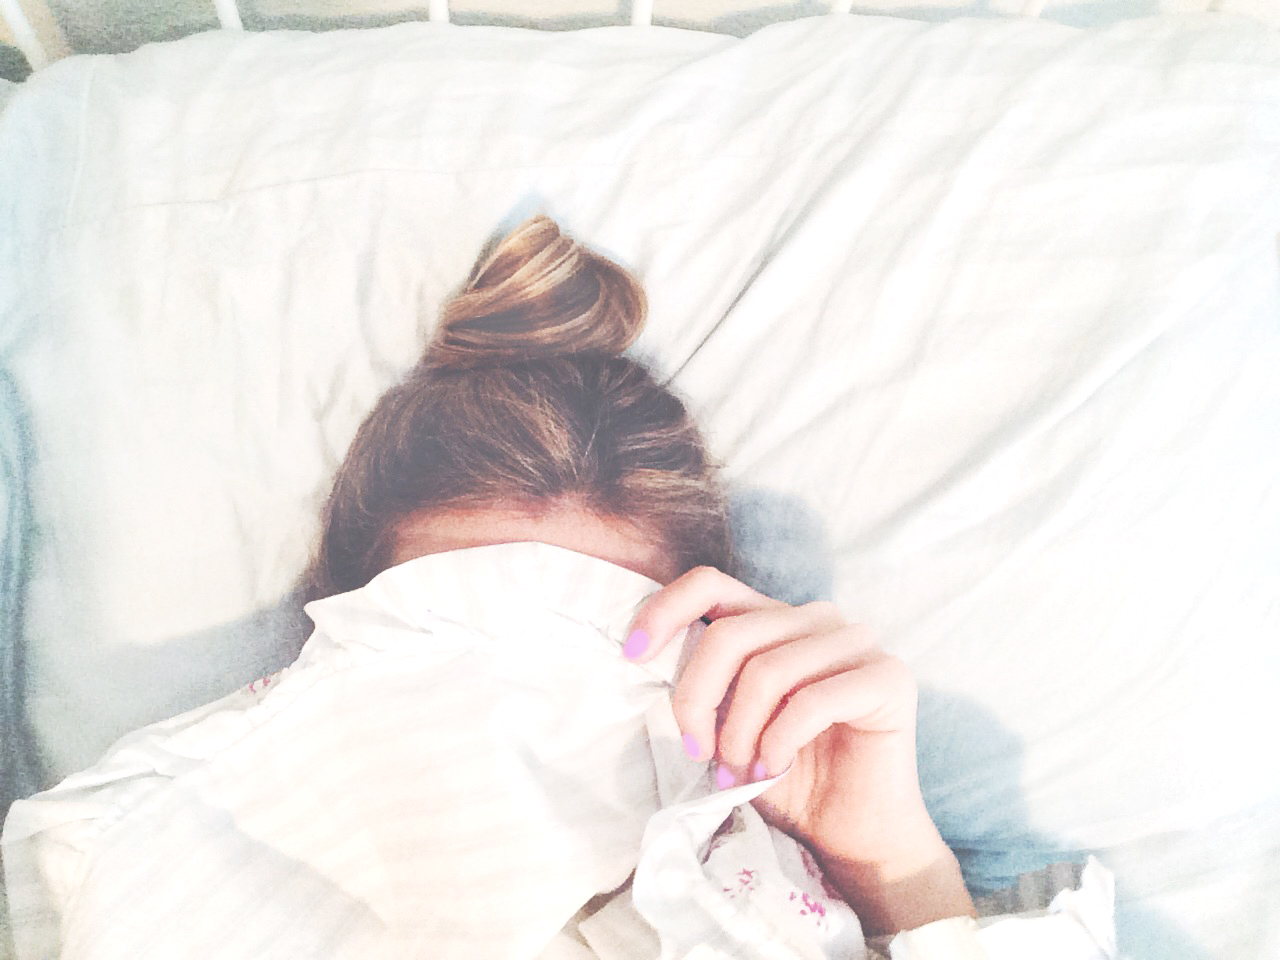 sleepy-top-knot-bun-livvyland-blog-i-need-coffee-olivia-watson-lilac-lavendar-nails